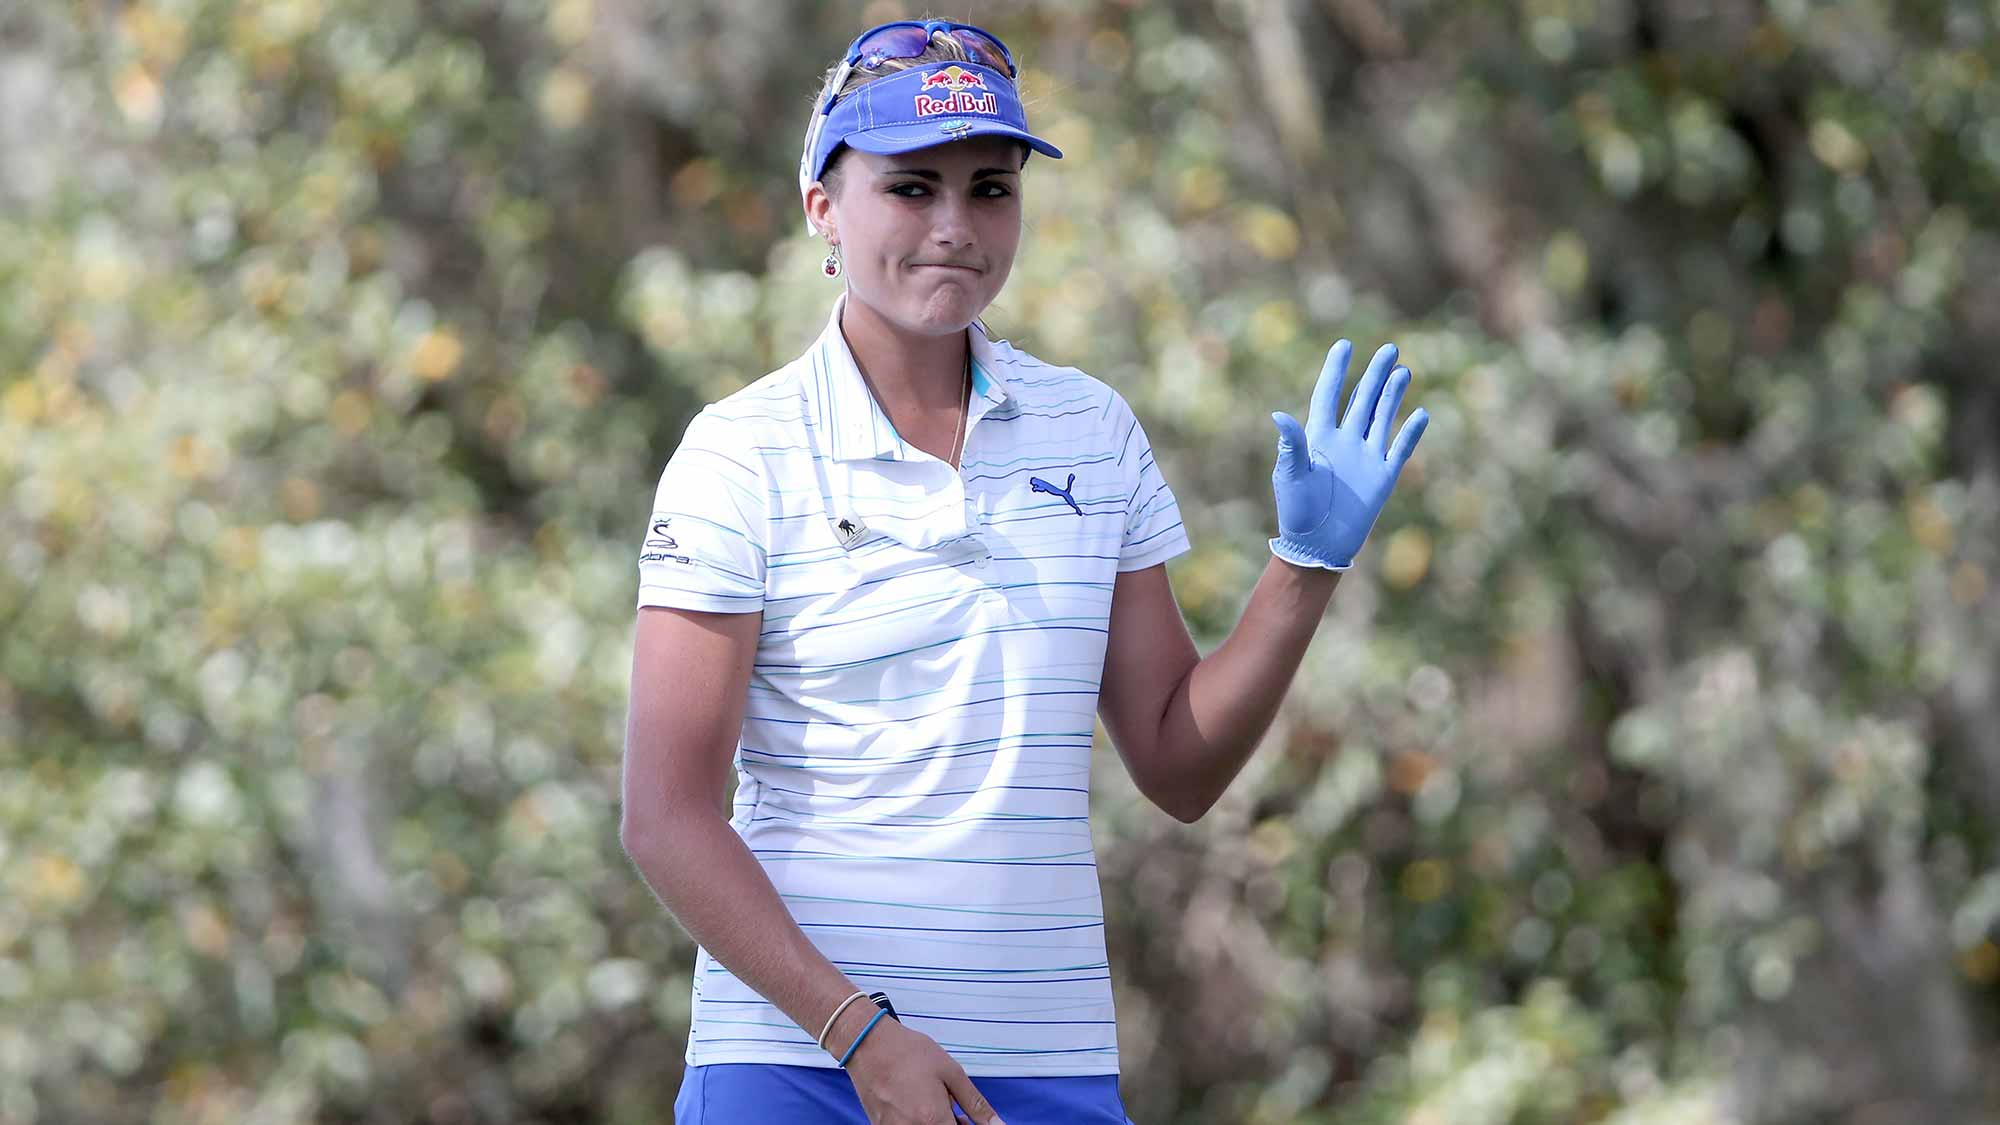 Lexi Thompson of the United States acknowledges the crowd on the first hole during the first round of the Coates Golf Championship Presented By R+L Carriers at Golden Ocala Golf Club